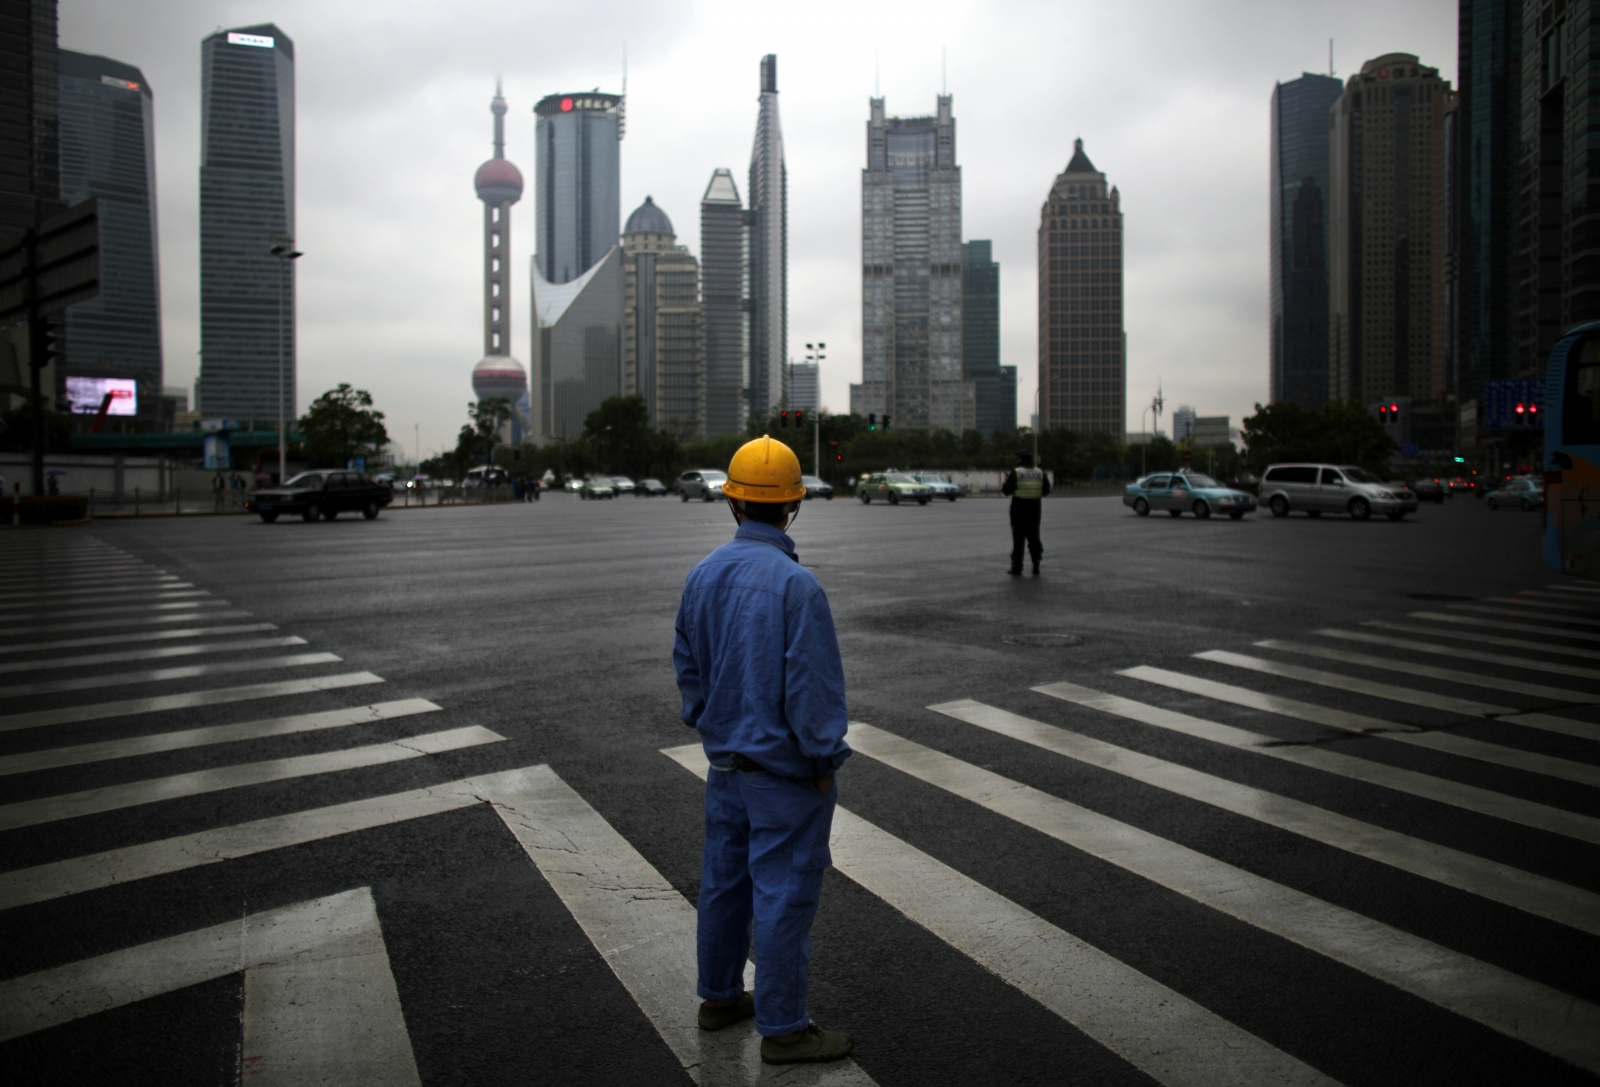 Outlook for China's banking system is stable: Moody's